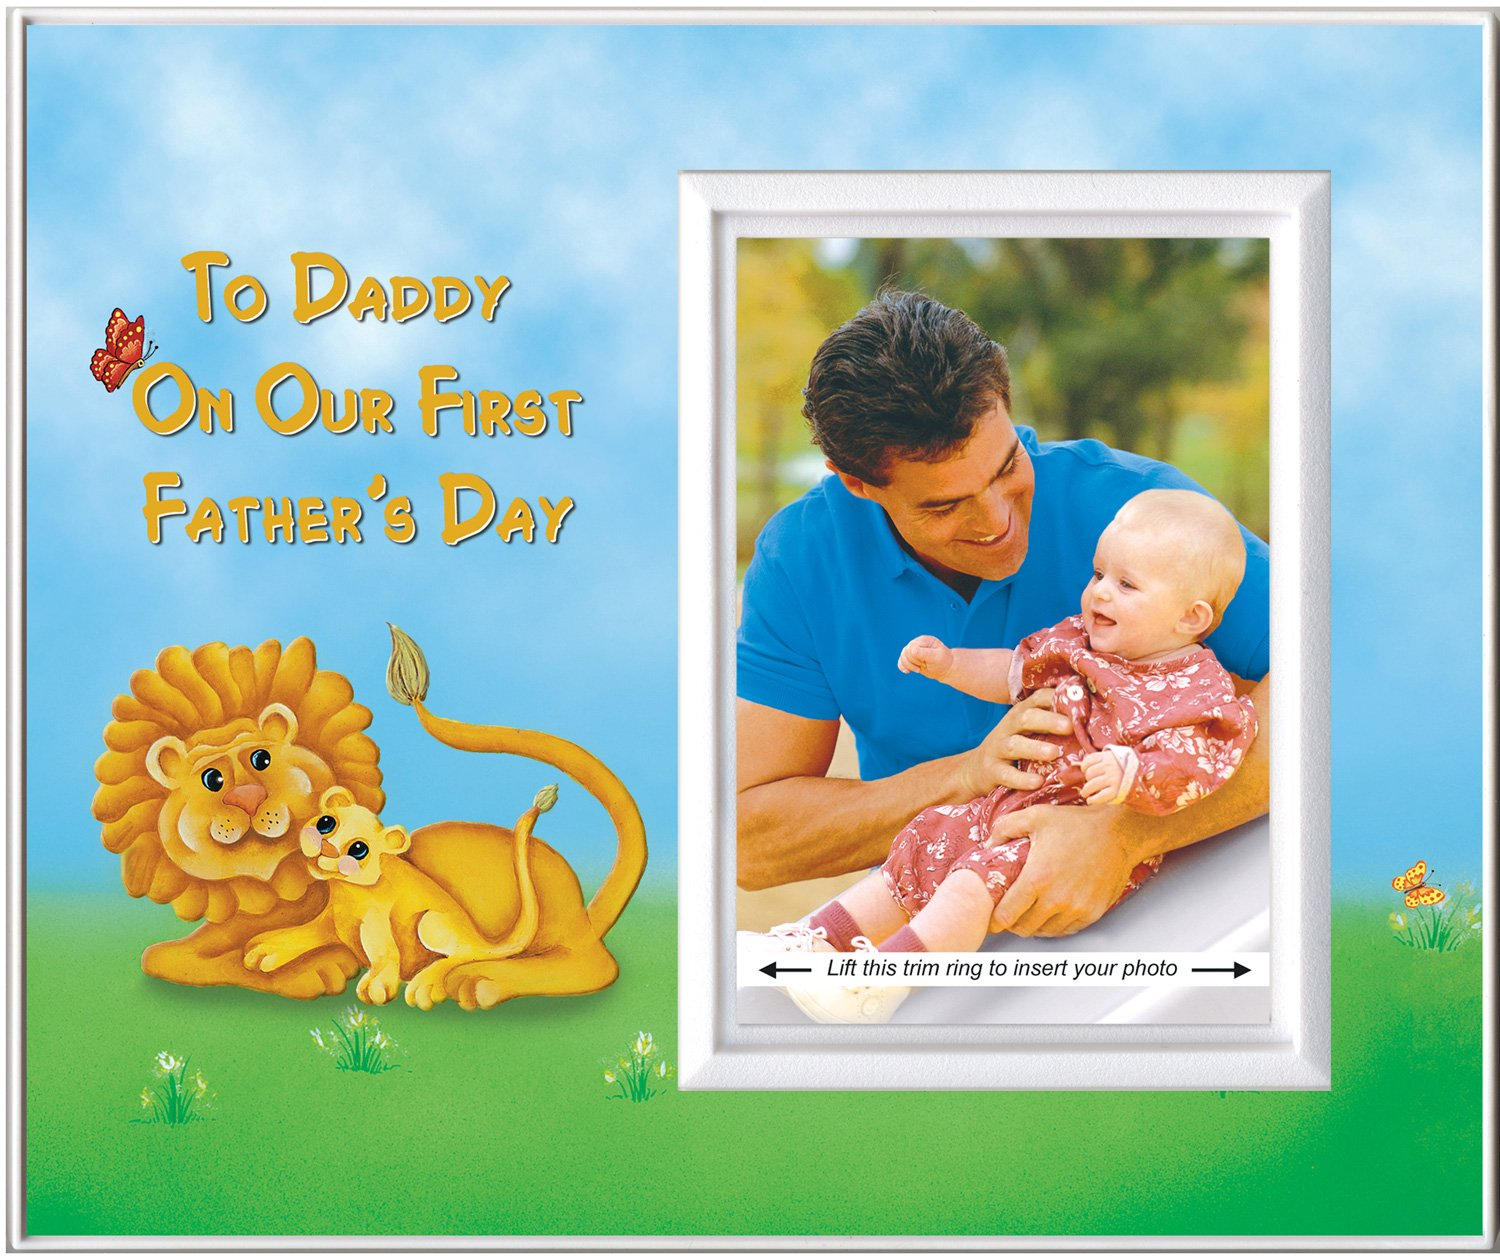 First Father's Day Picture Frame Gift   Affordable, Colorful and Fun   Holds 3.5 x 5 Photo   Boy or Girl Nursery Decor   Dad and Baby Lion Theme   Innovative Front-Loading Design